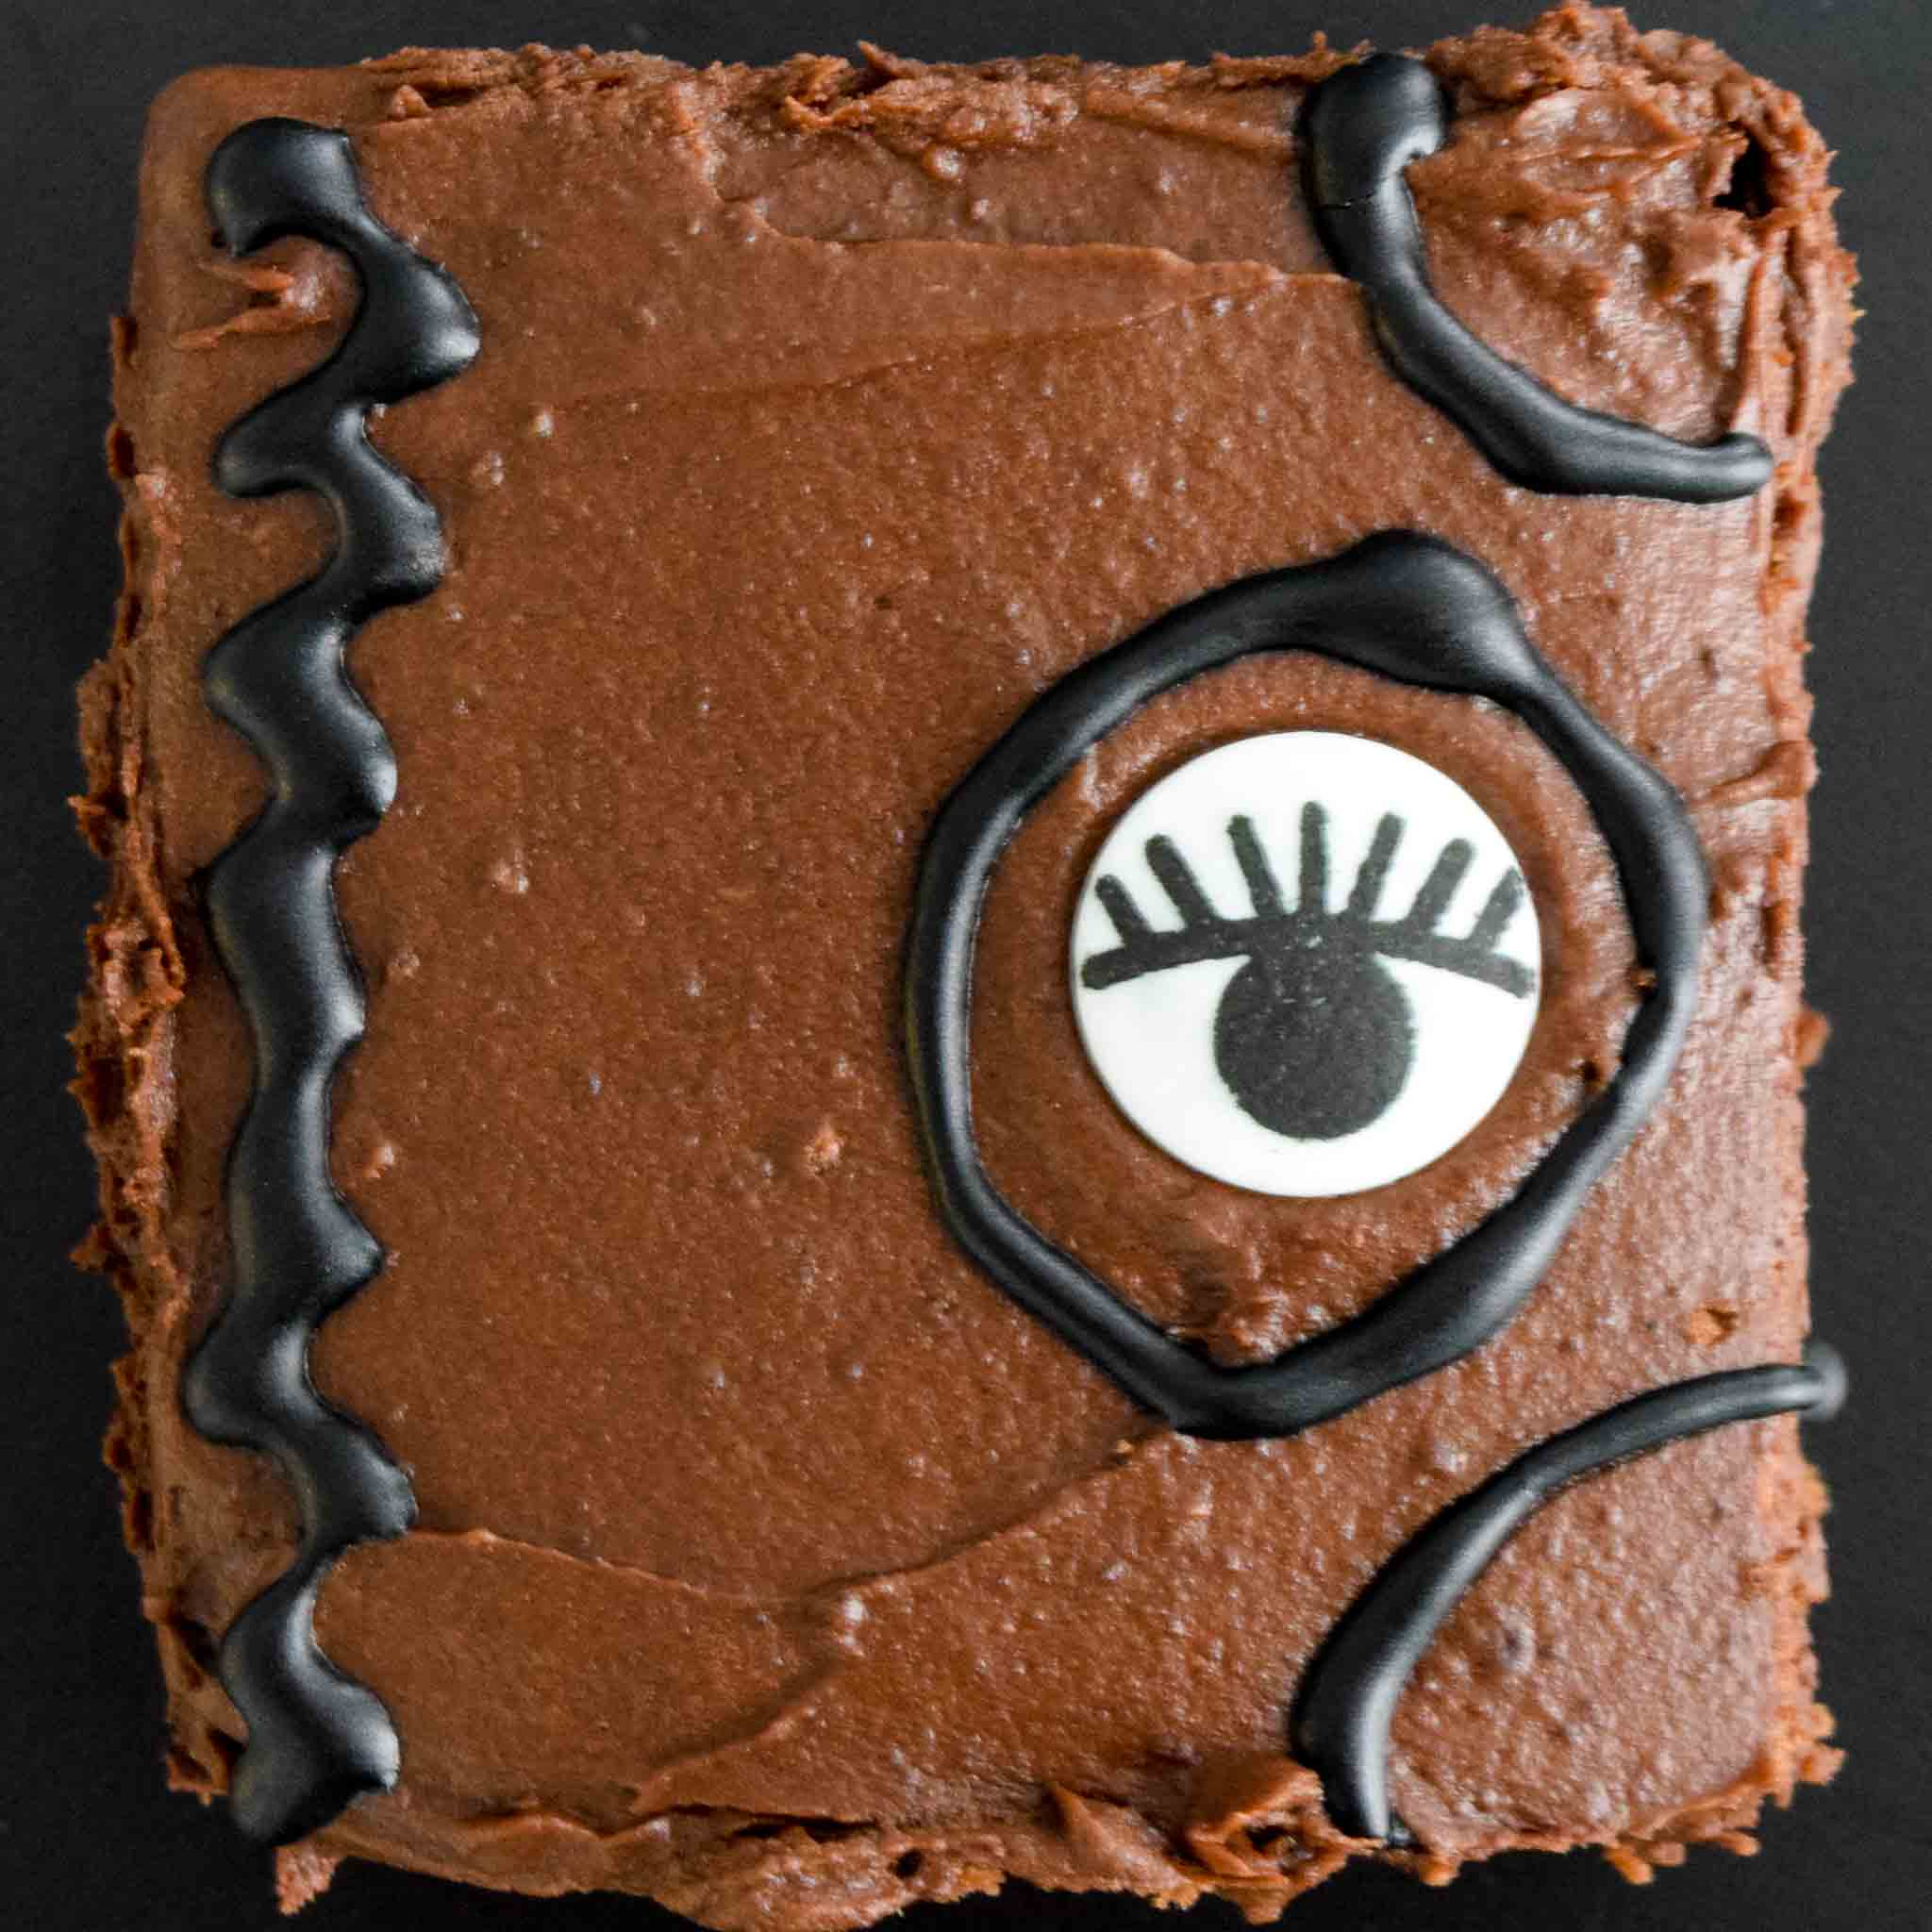 Brownie decorated like Hocus Pocus Spell book up close view